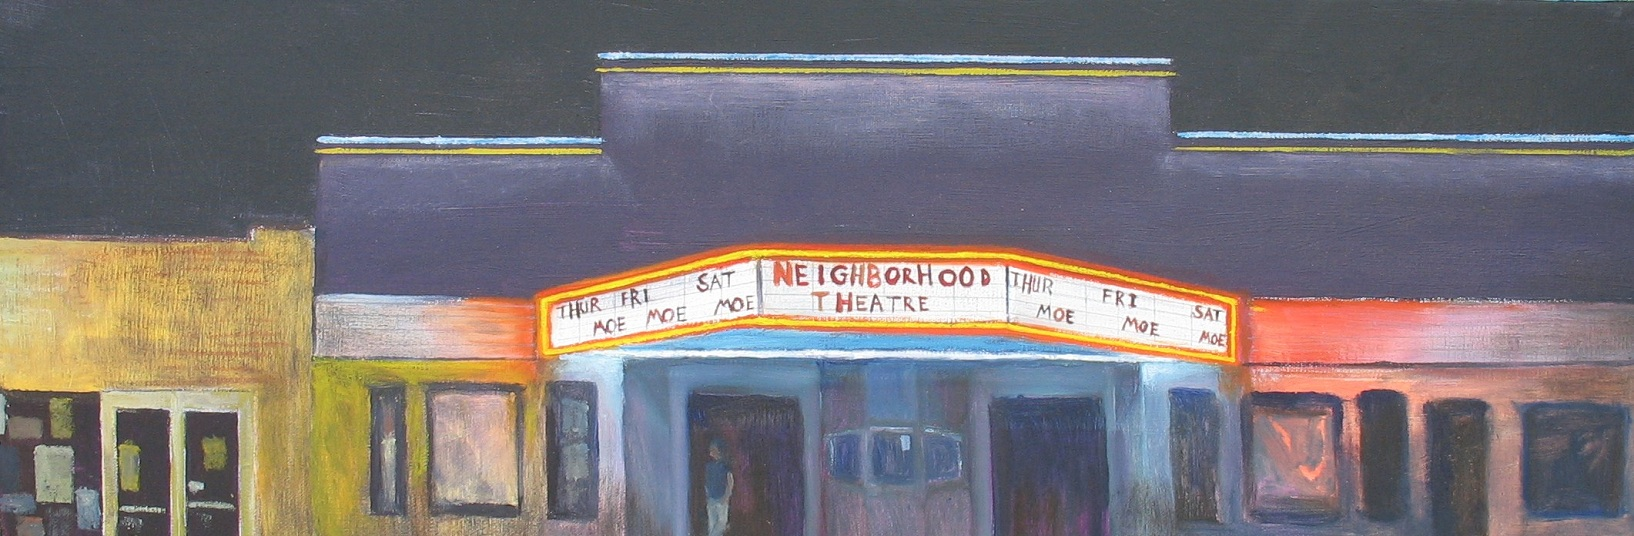 neighborhood-theater-2009